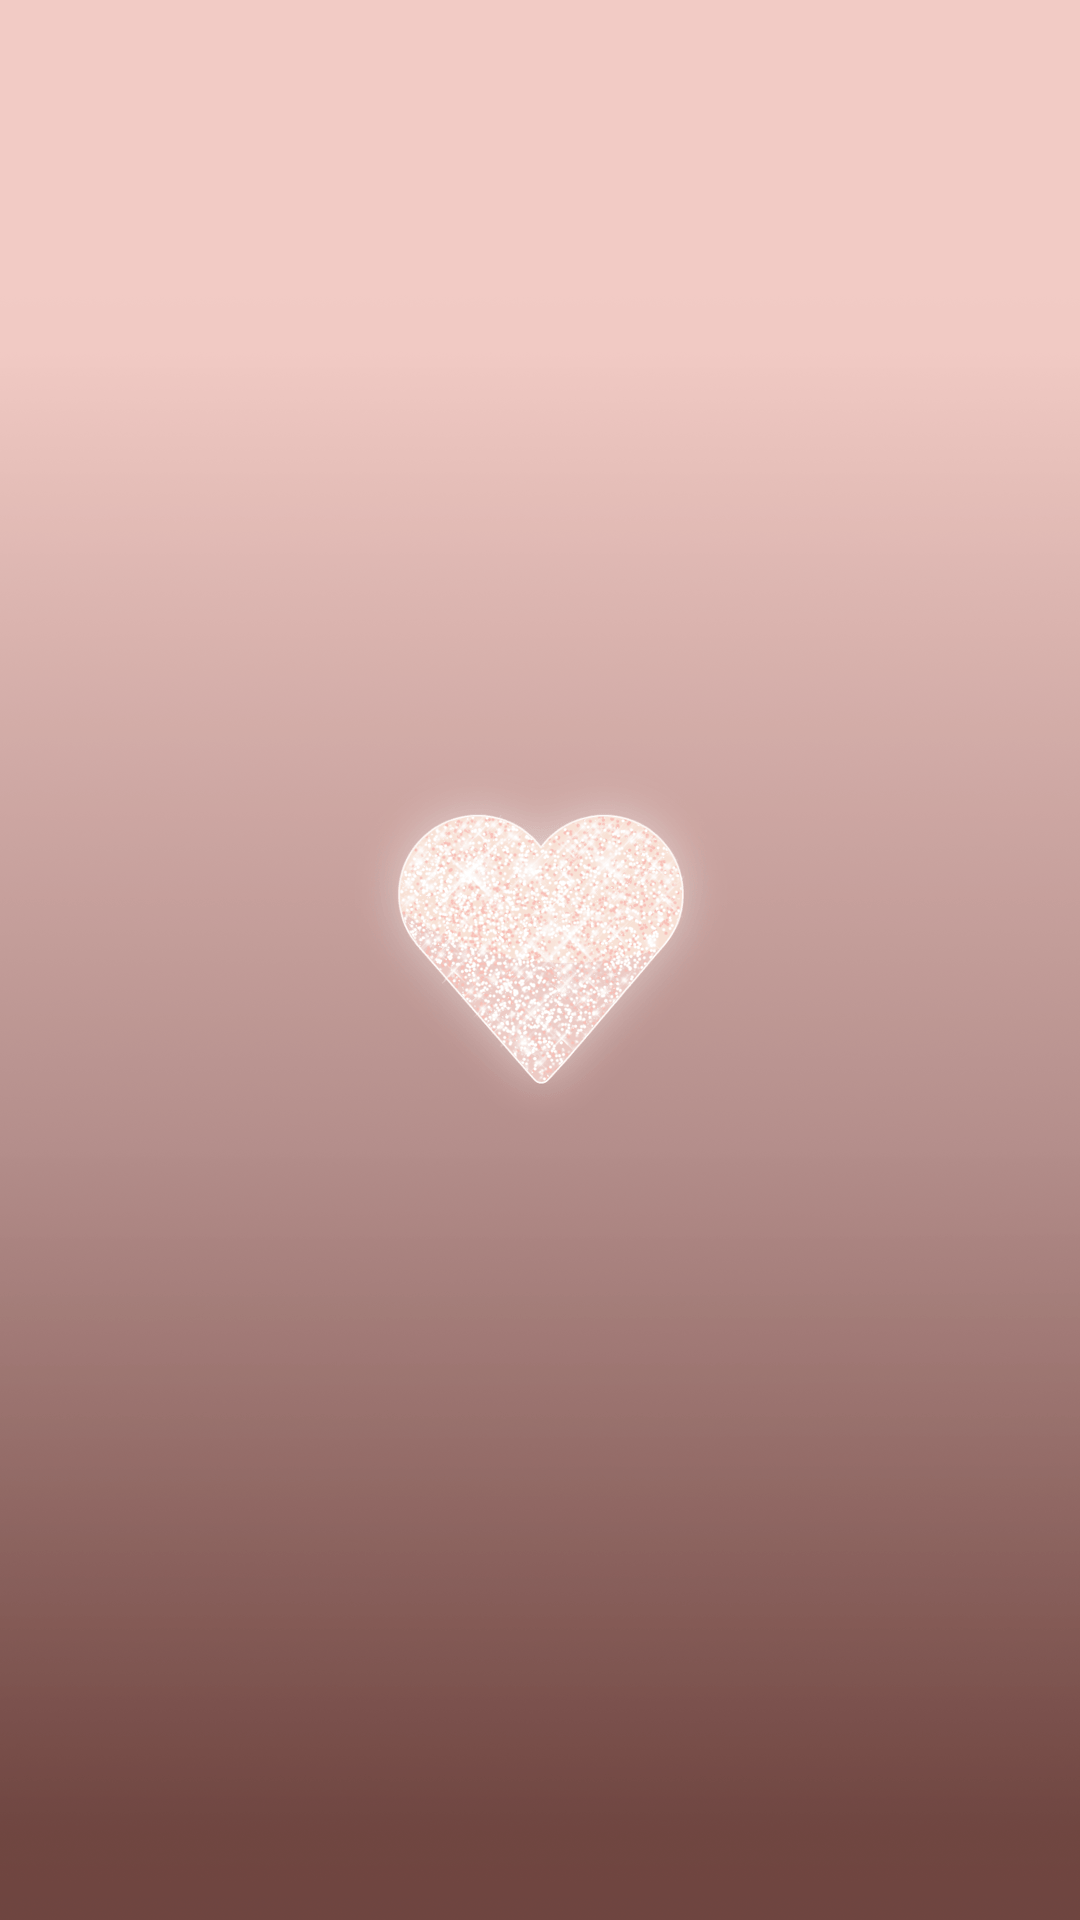 Love Emptiness Wallpaper : Rose Gold Wallpapers - Wallpaper cave